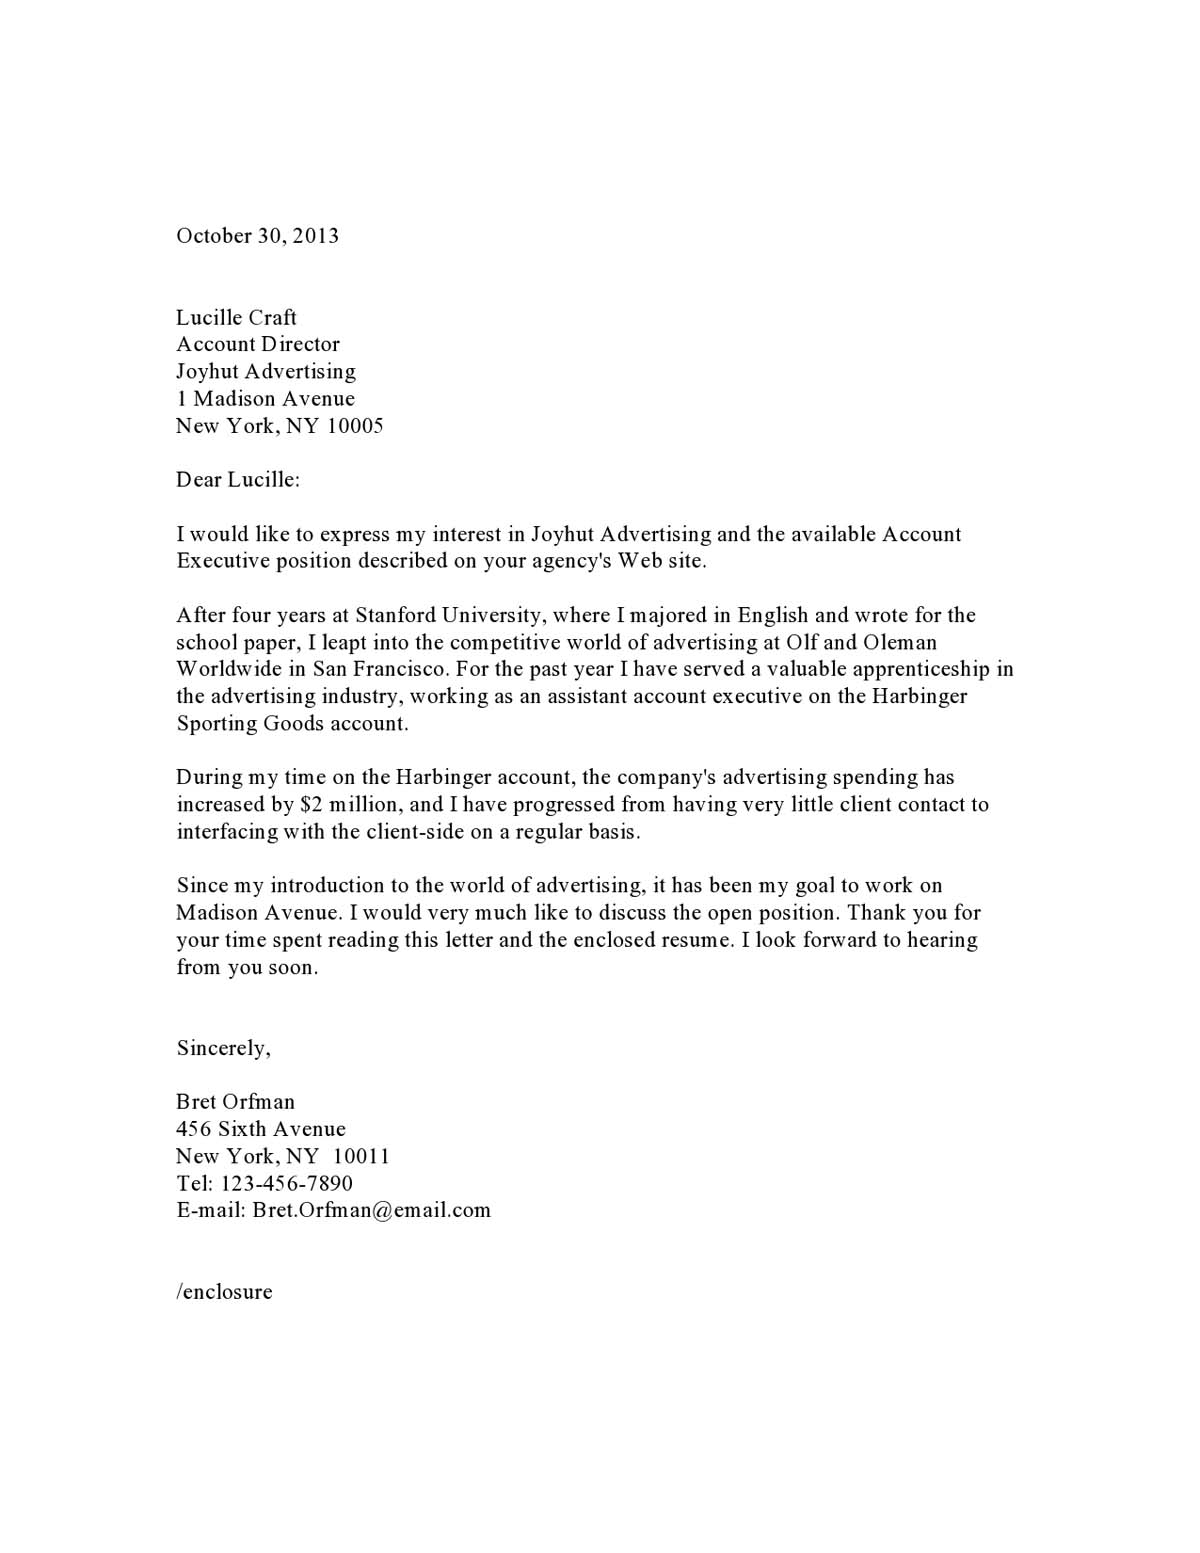 account executive resume cover letter example - Email Cover Letter Example